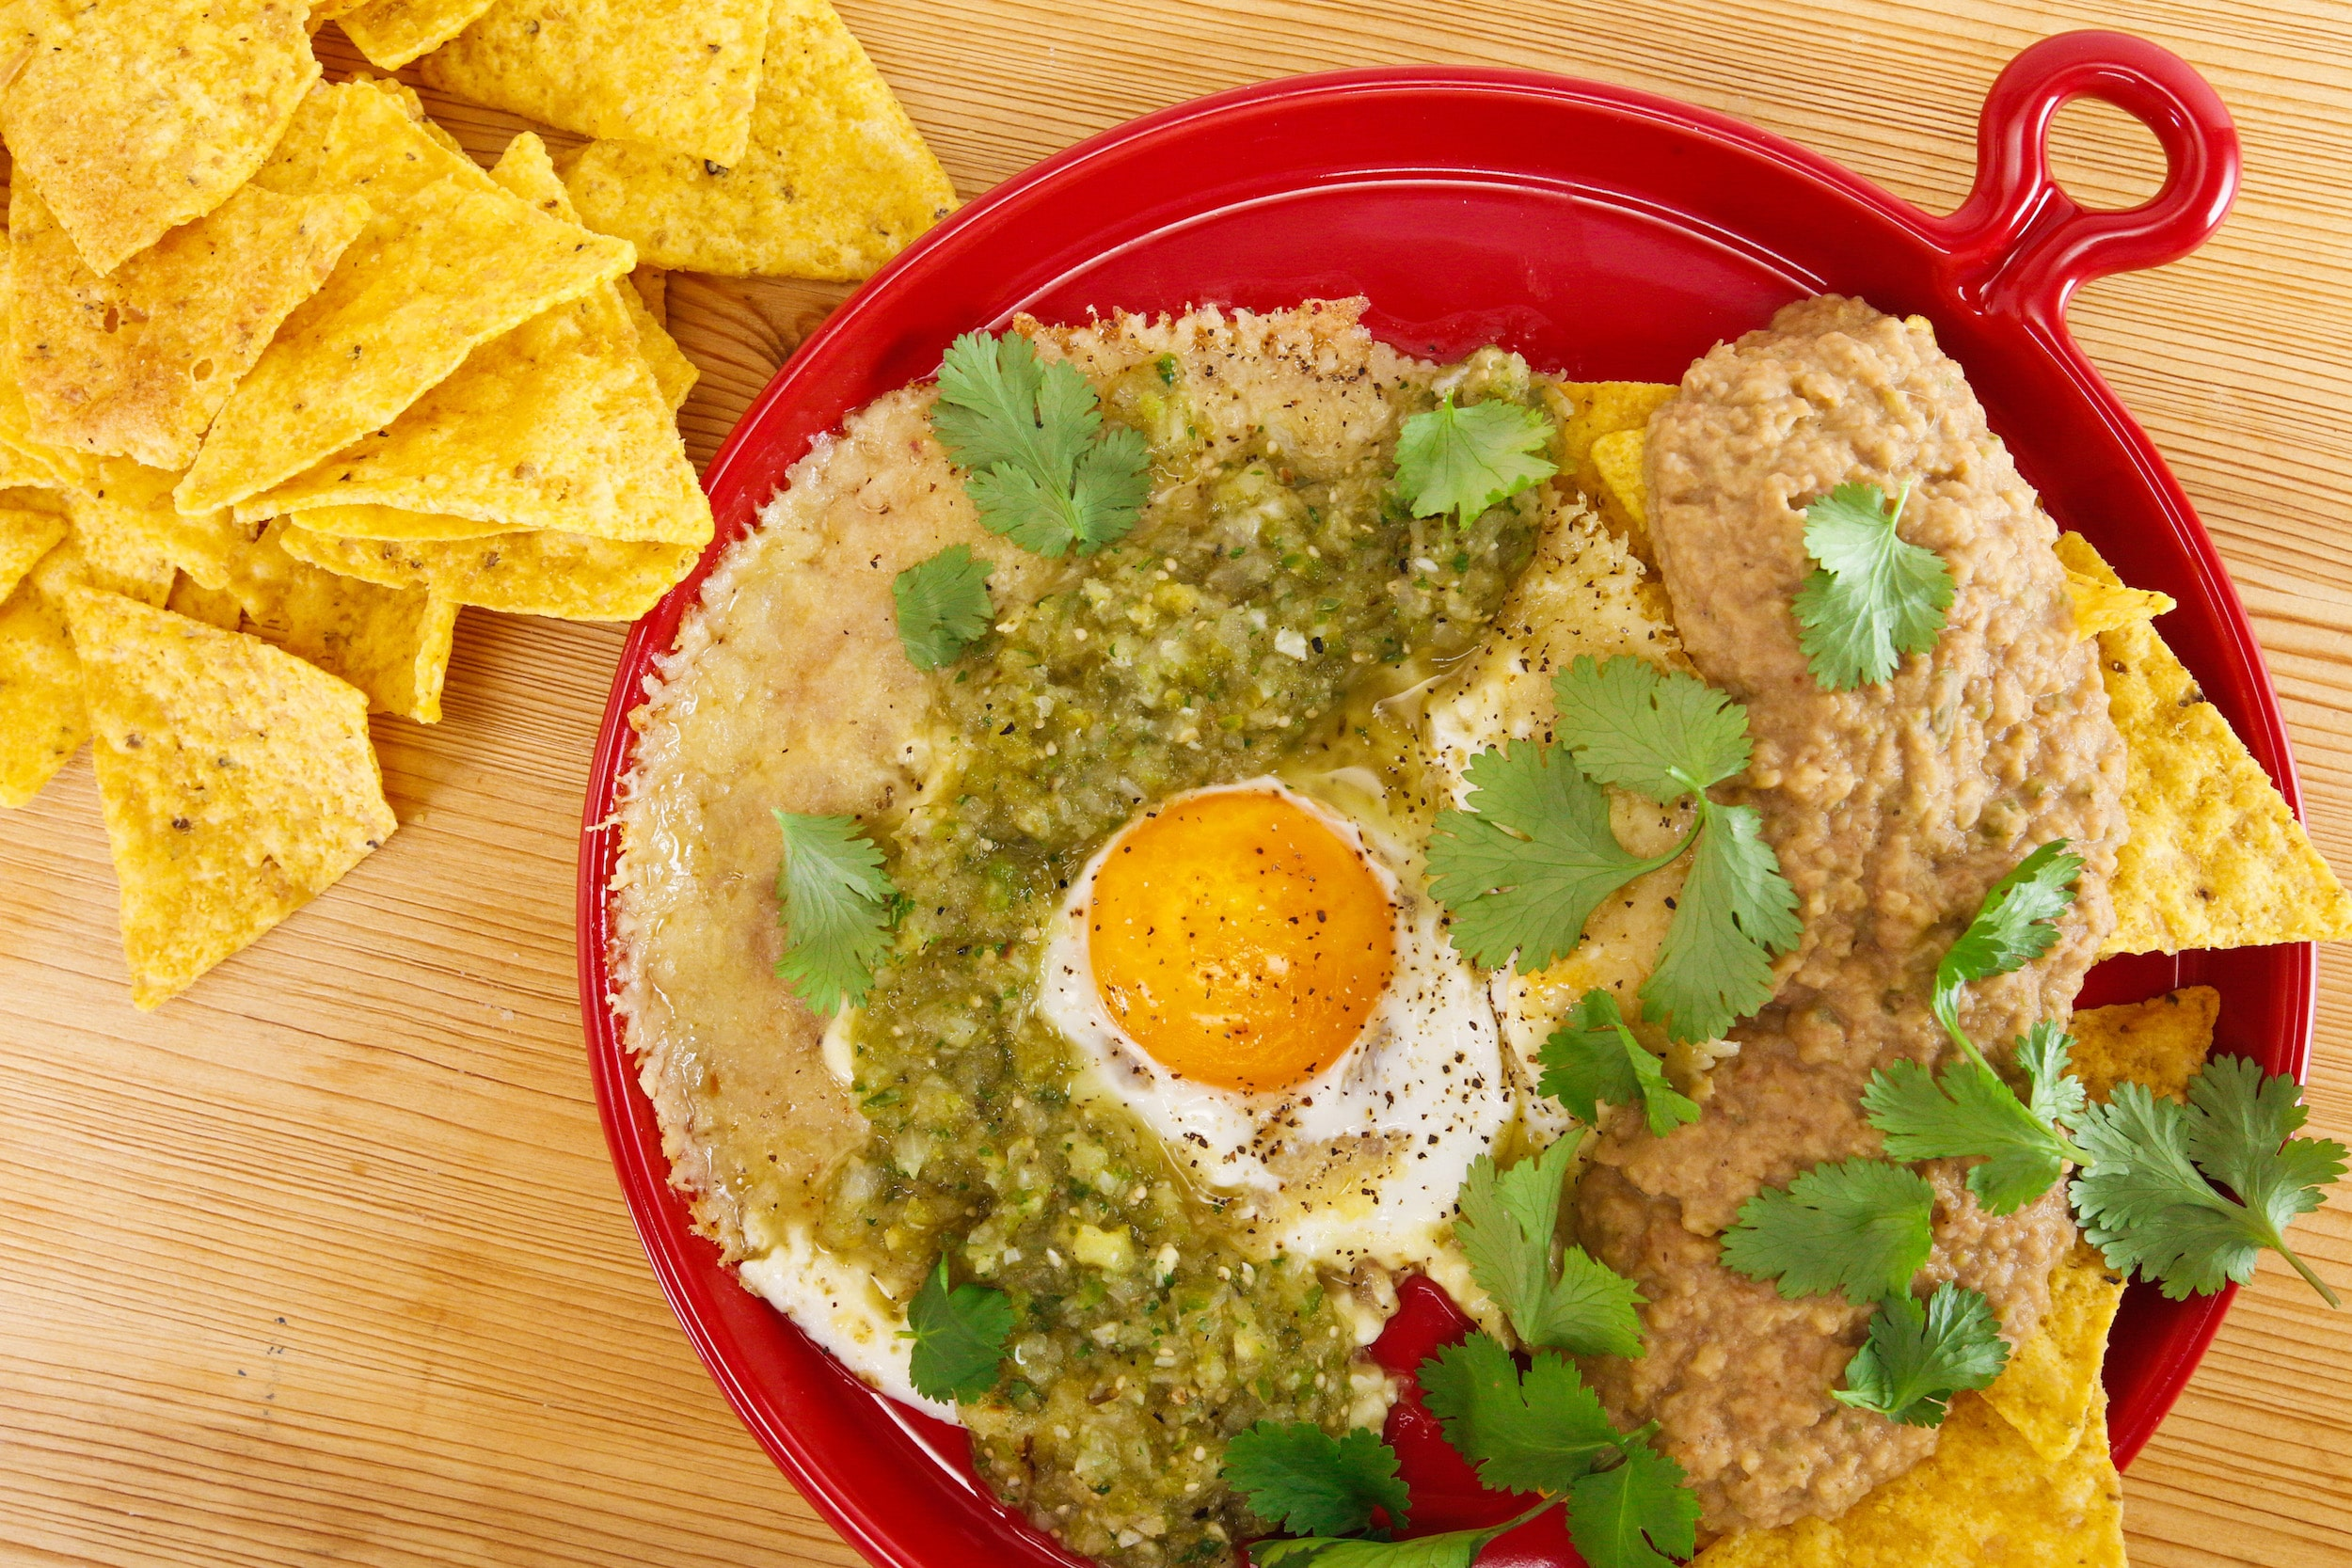 Rachael's Pepper Jack Frico Eggs with Salsa Verde and Bean Dip 'n' Chips